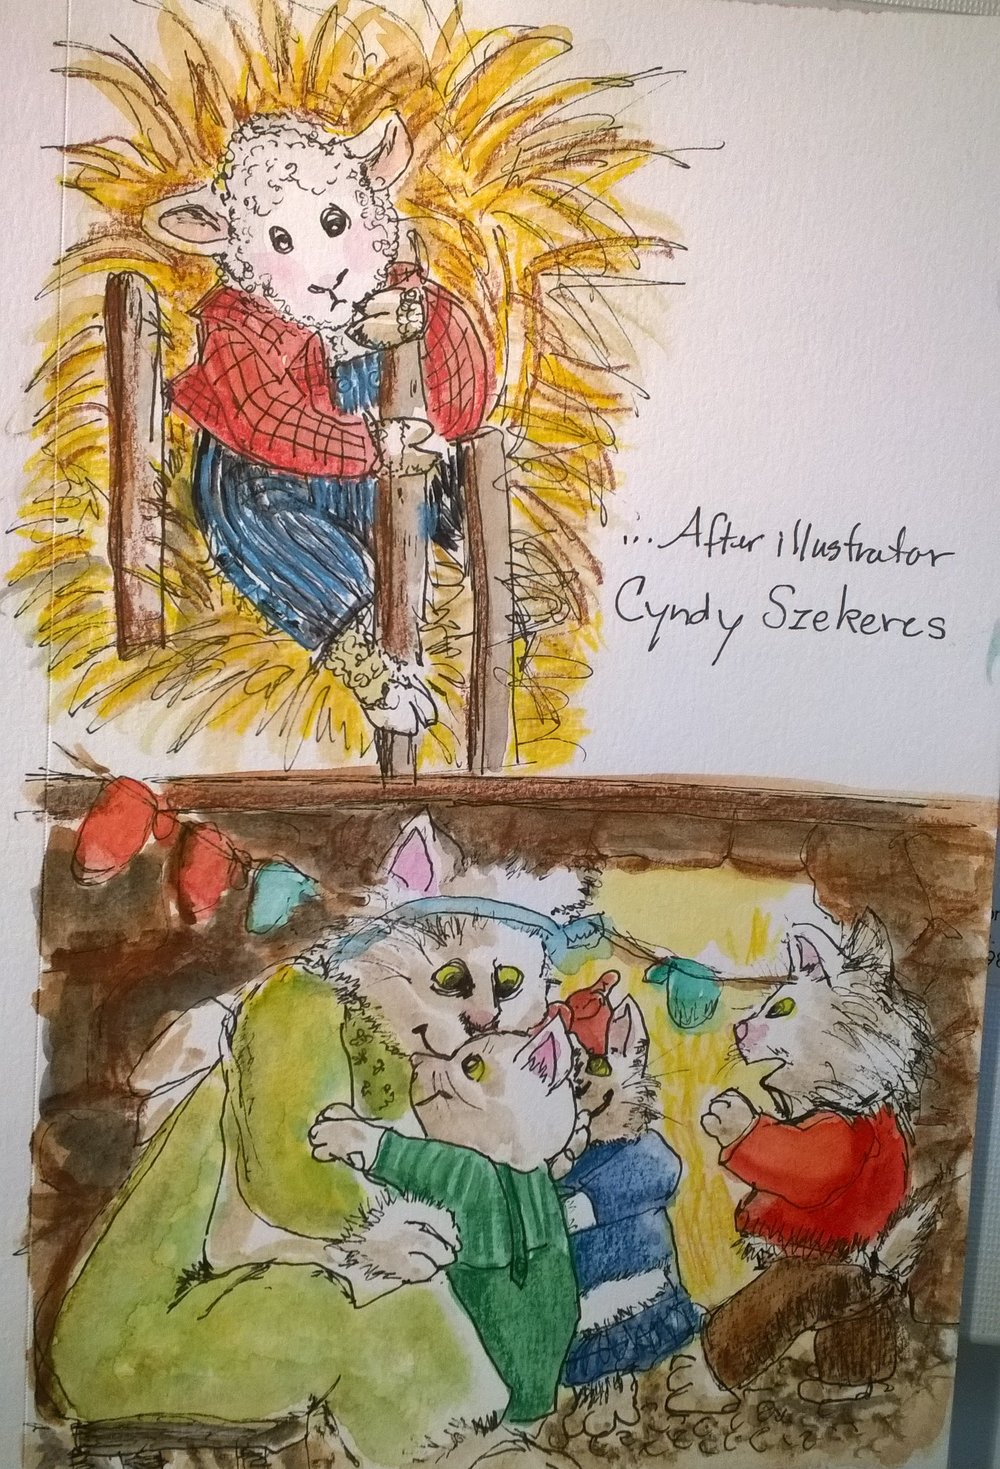 """This is my practice (study) of illustrations by Cyndy Zekeres, from the book, """"AChild's First Book Of Nusery Rhymes"""" selected and adapted by Selma G. Lanes, C. 1983.  I love her illustration style which is similar to my sketchbooking style with pen, ink, and watercolor, but she also adds colored pencil. These little sketches were a fun way to explore her style and to inspire my own illustration goals."""